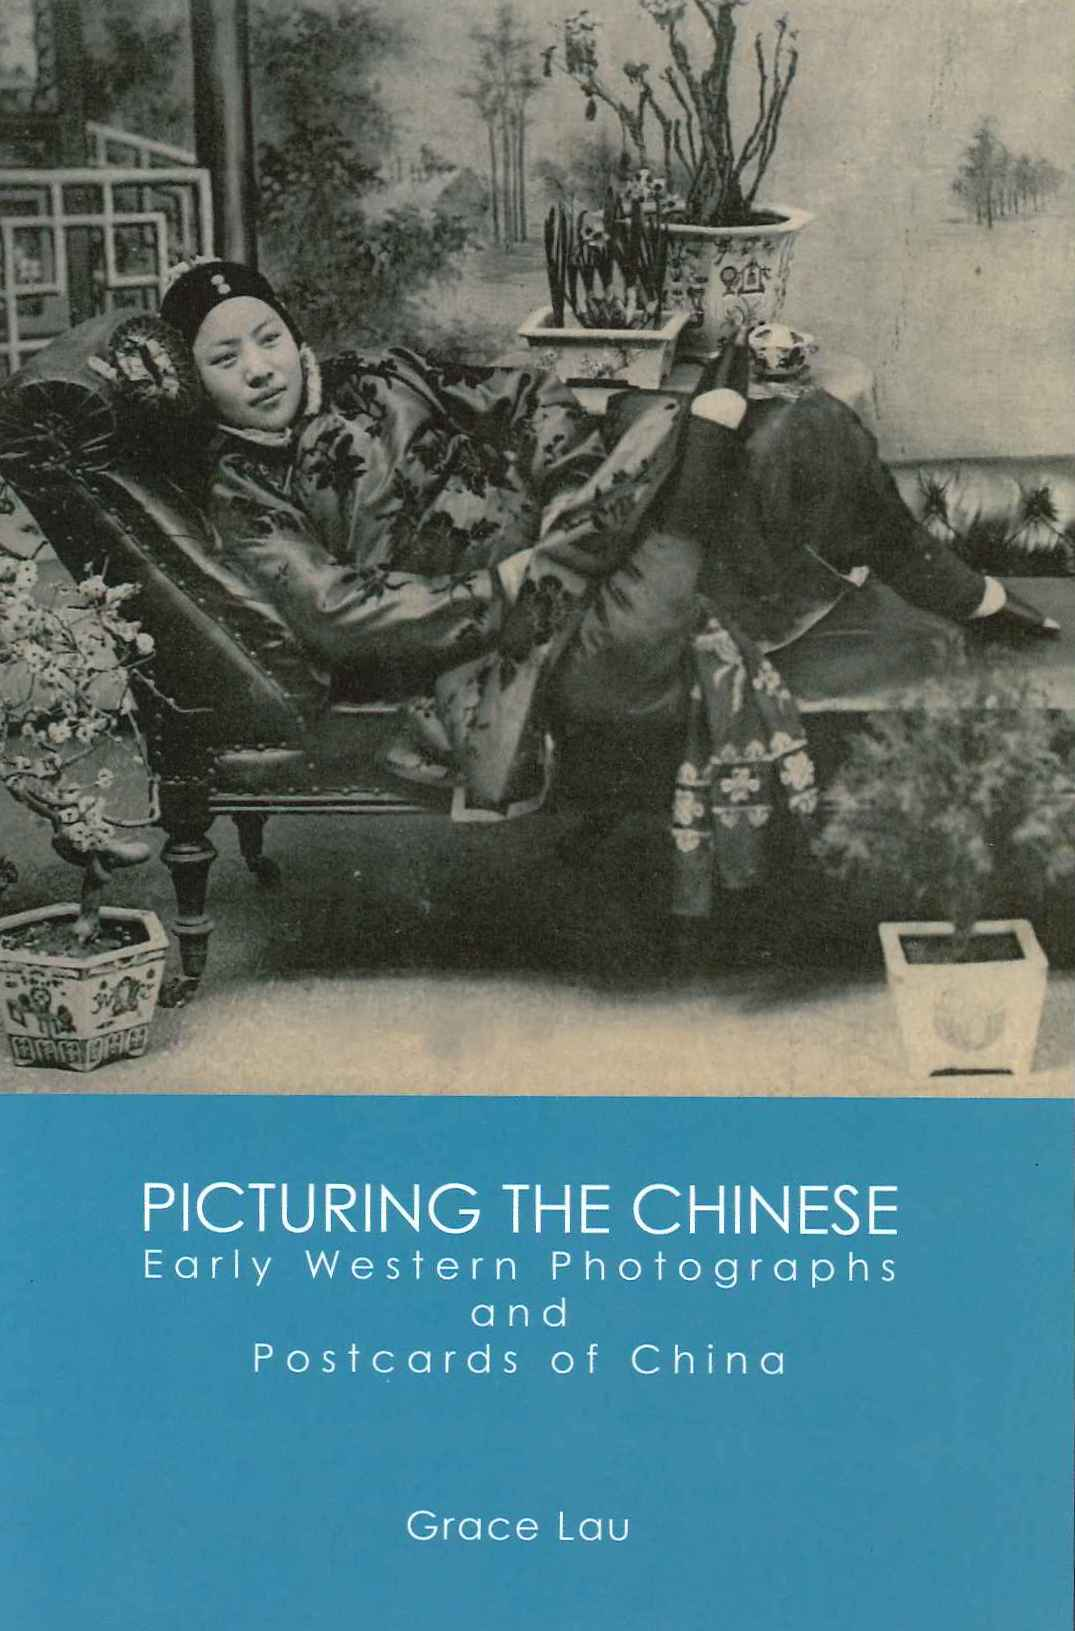 Picturing the Chinese: Early Western Photographs and Postcards of China